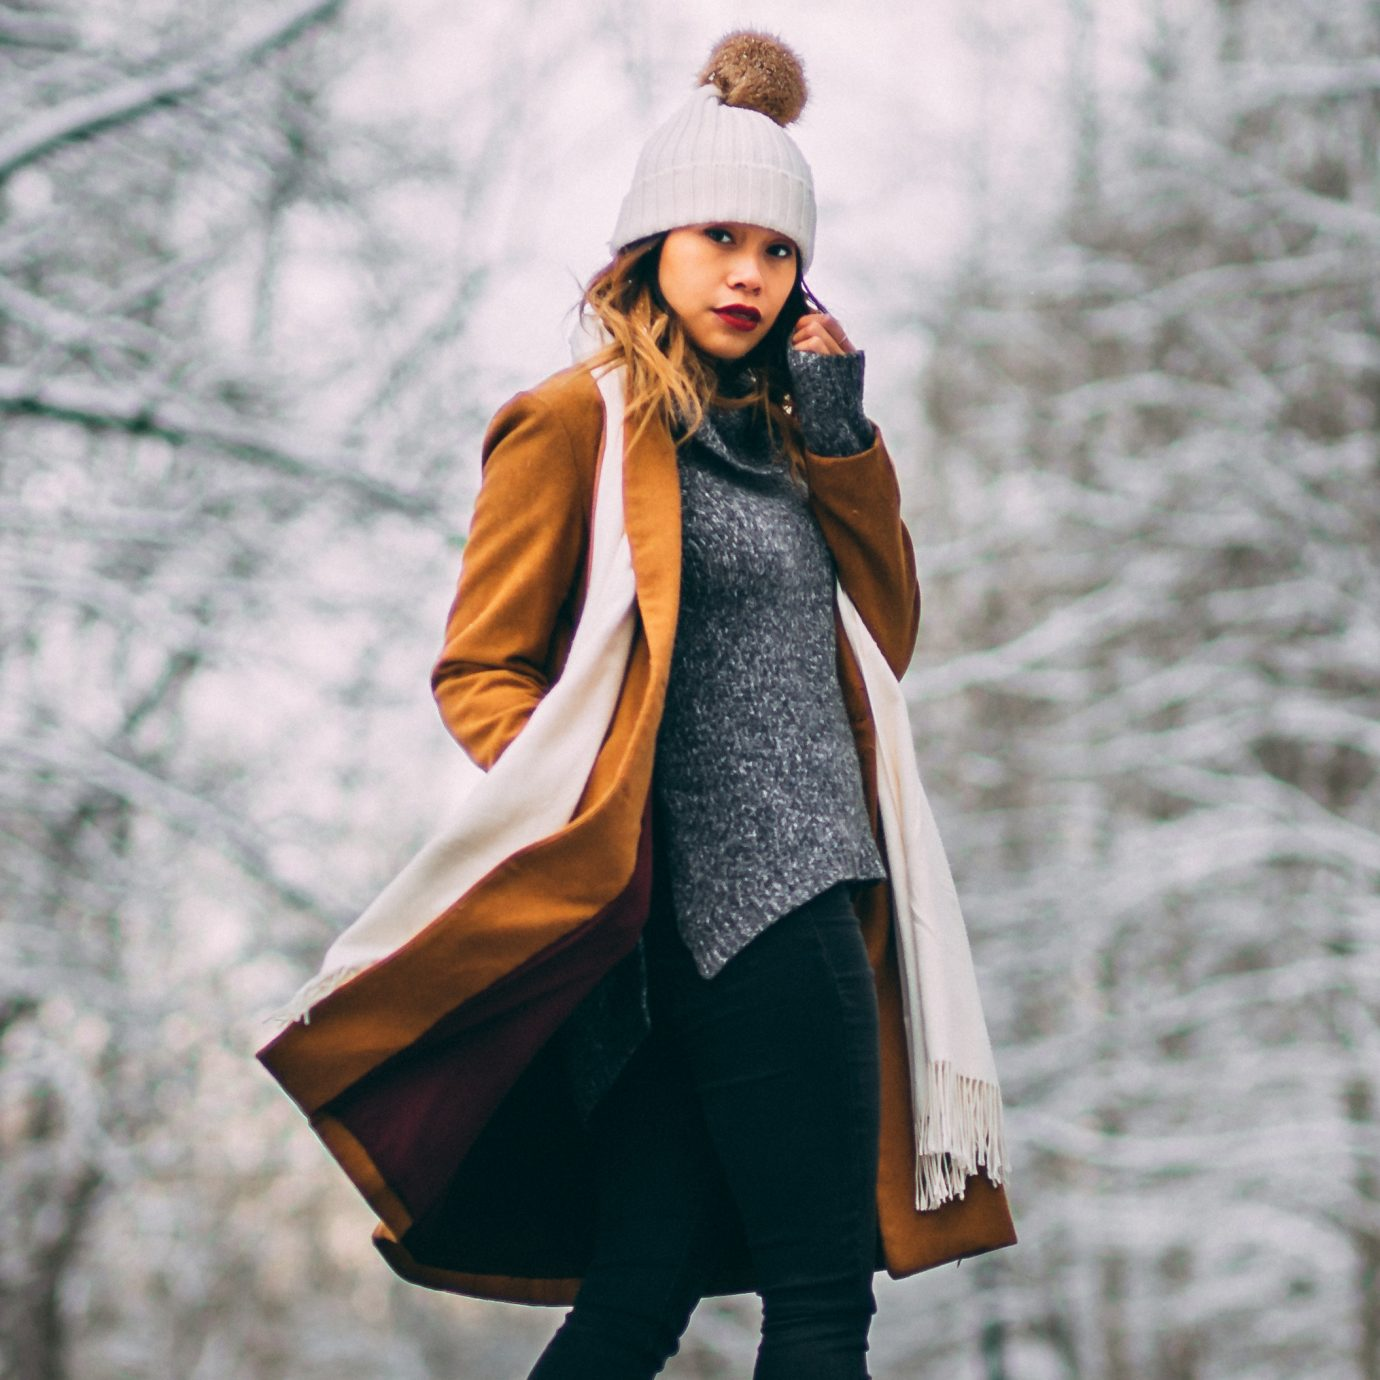 woman on a snowy street with a tan wool winter coat